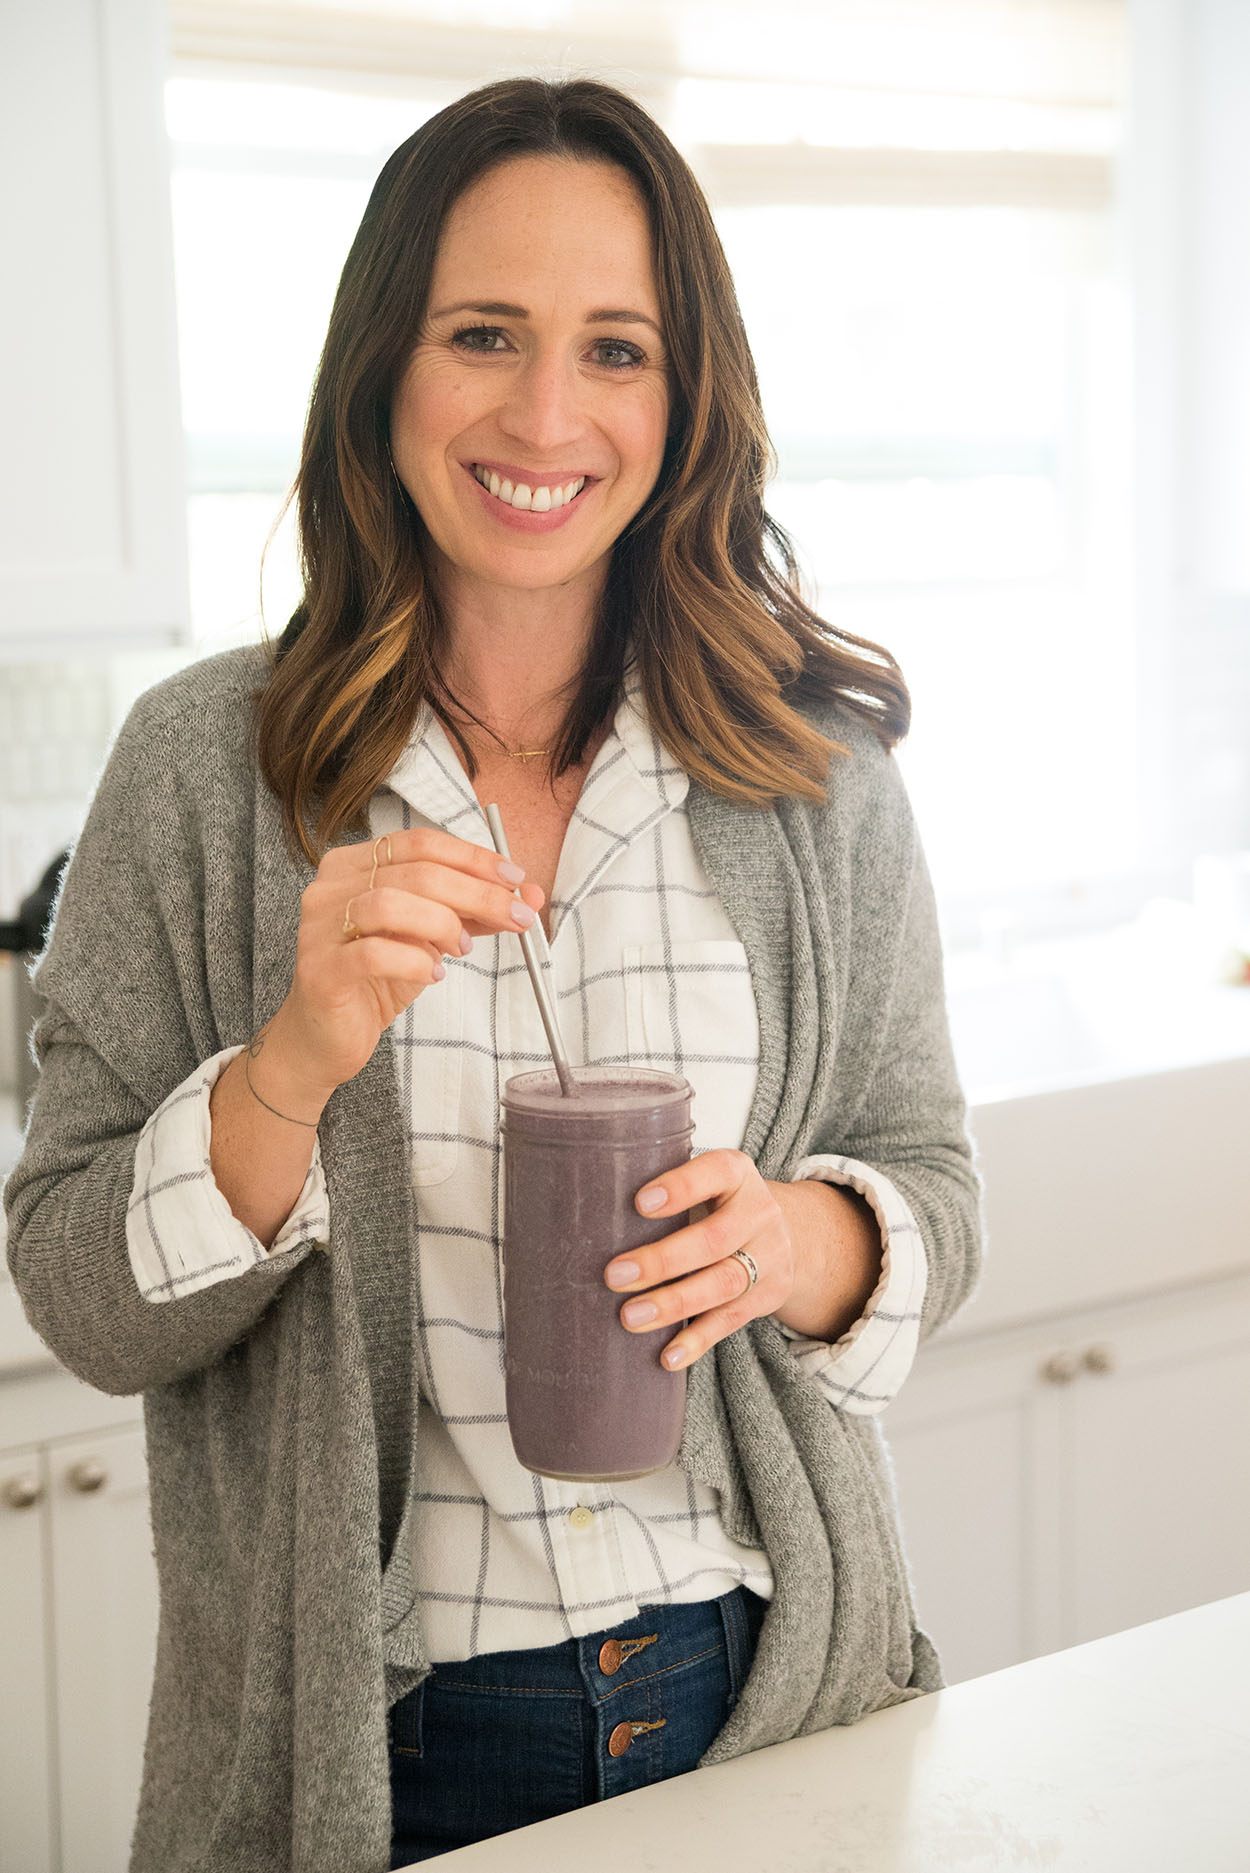 woman smiling holding a berry smoothie